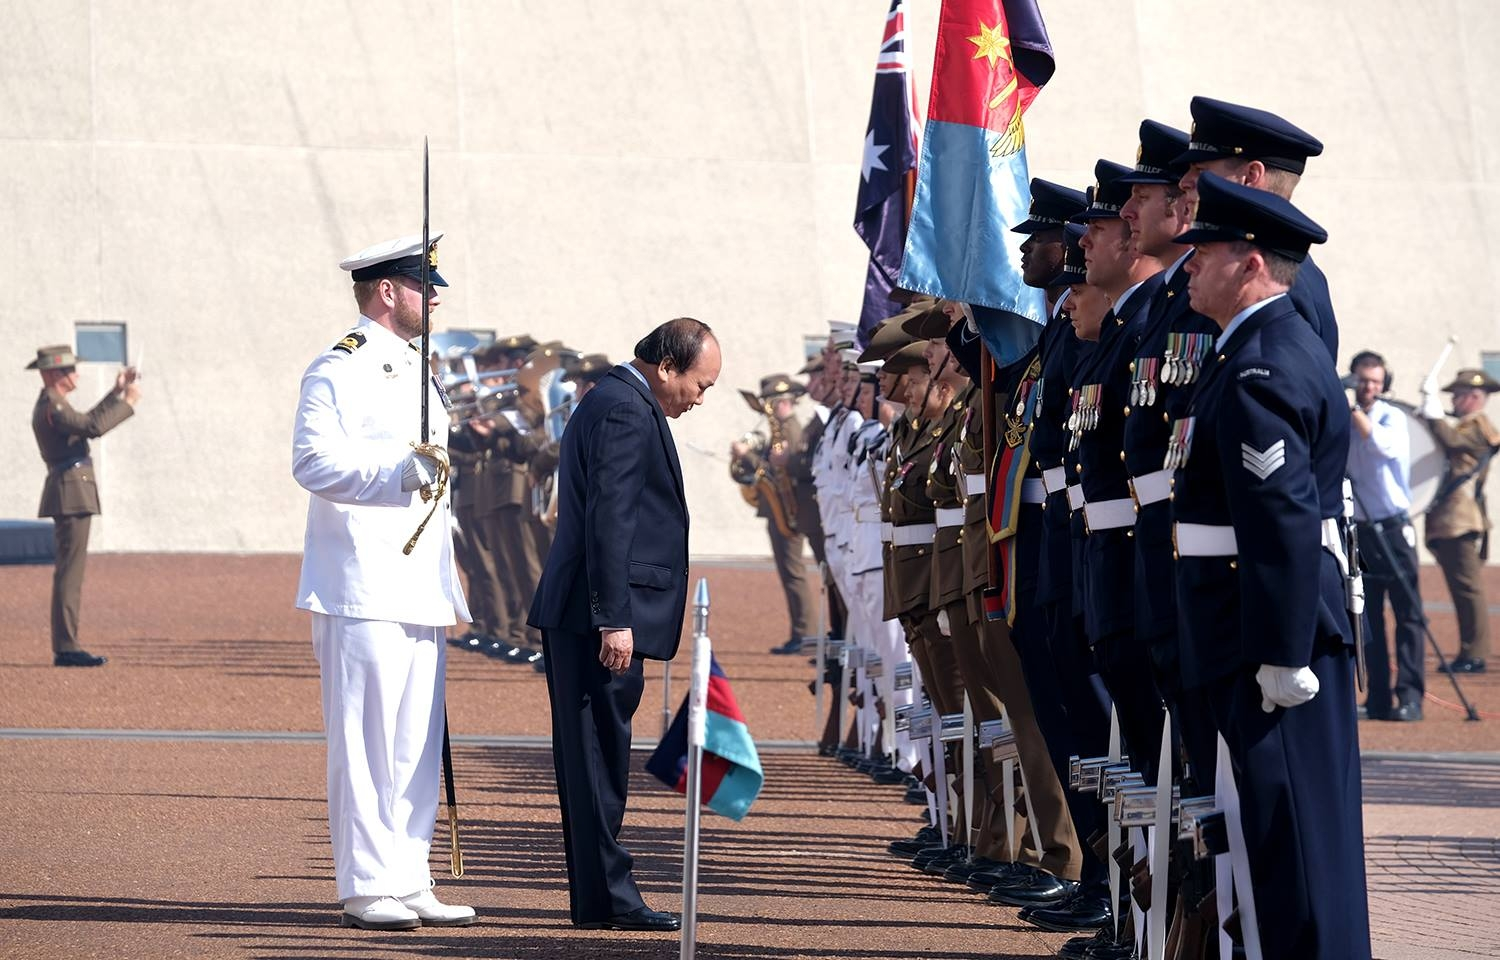 pm phuc greeted by australian counterpart with a 19 gun salute